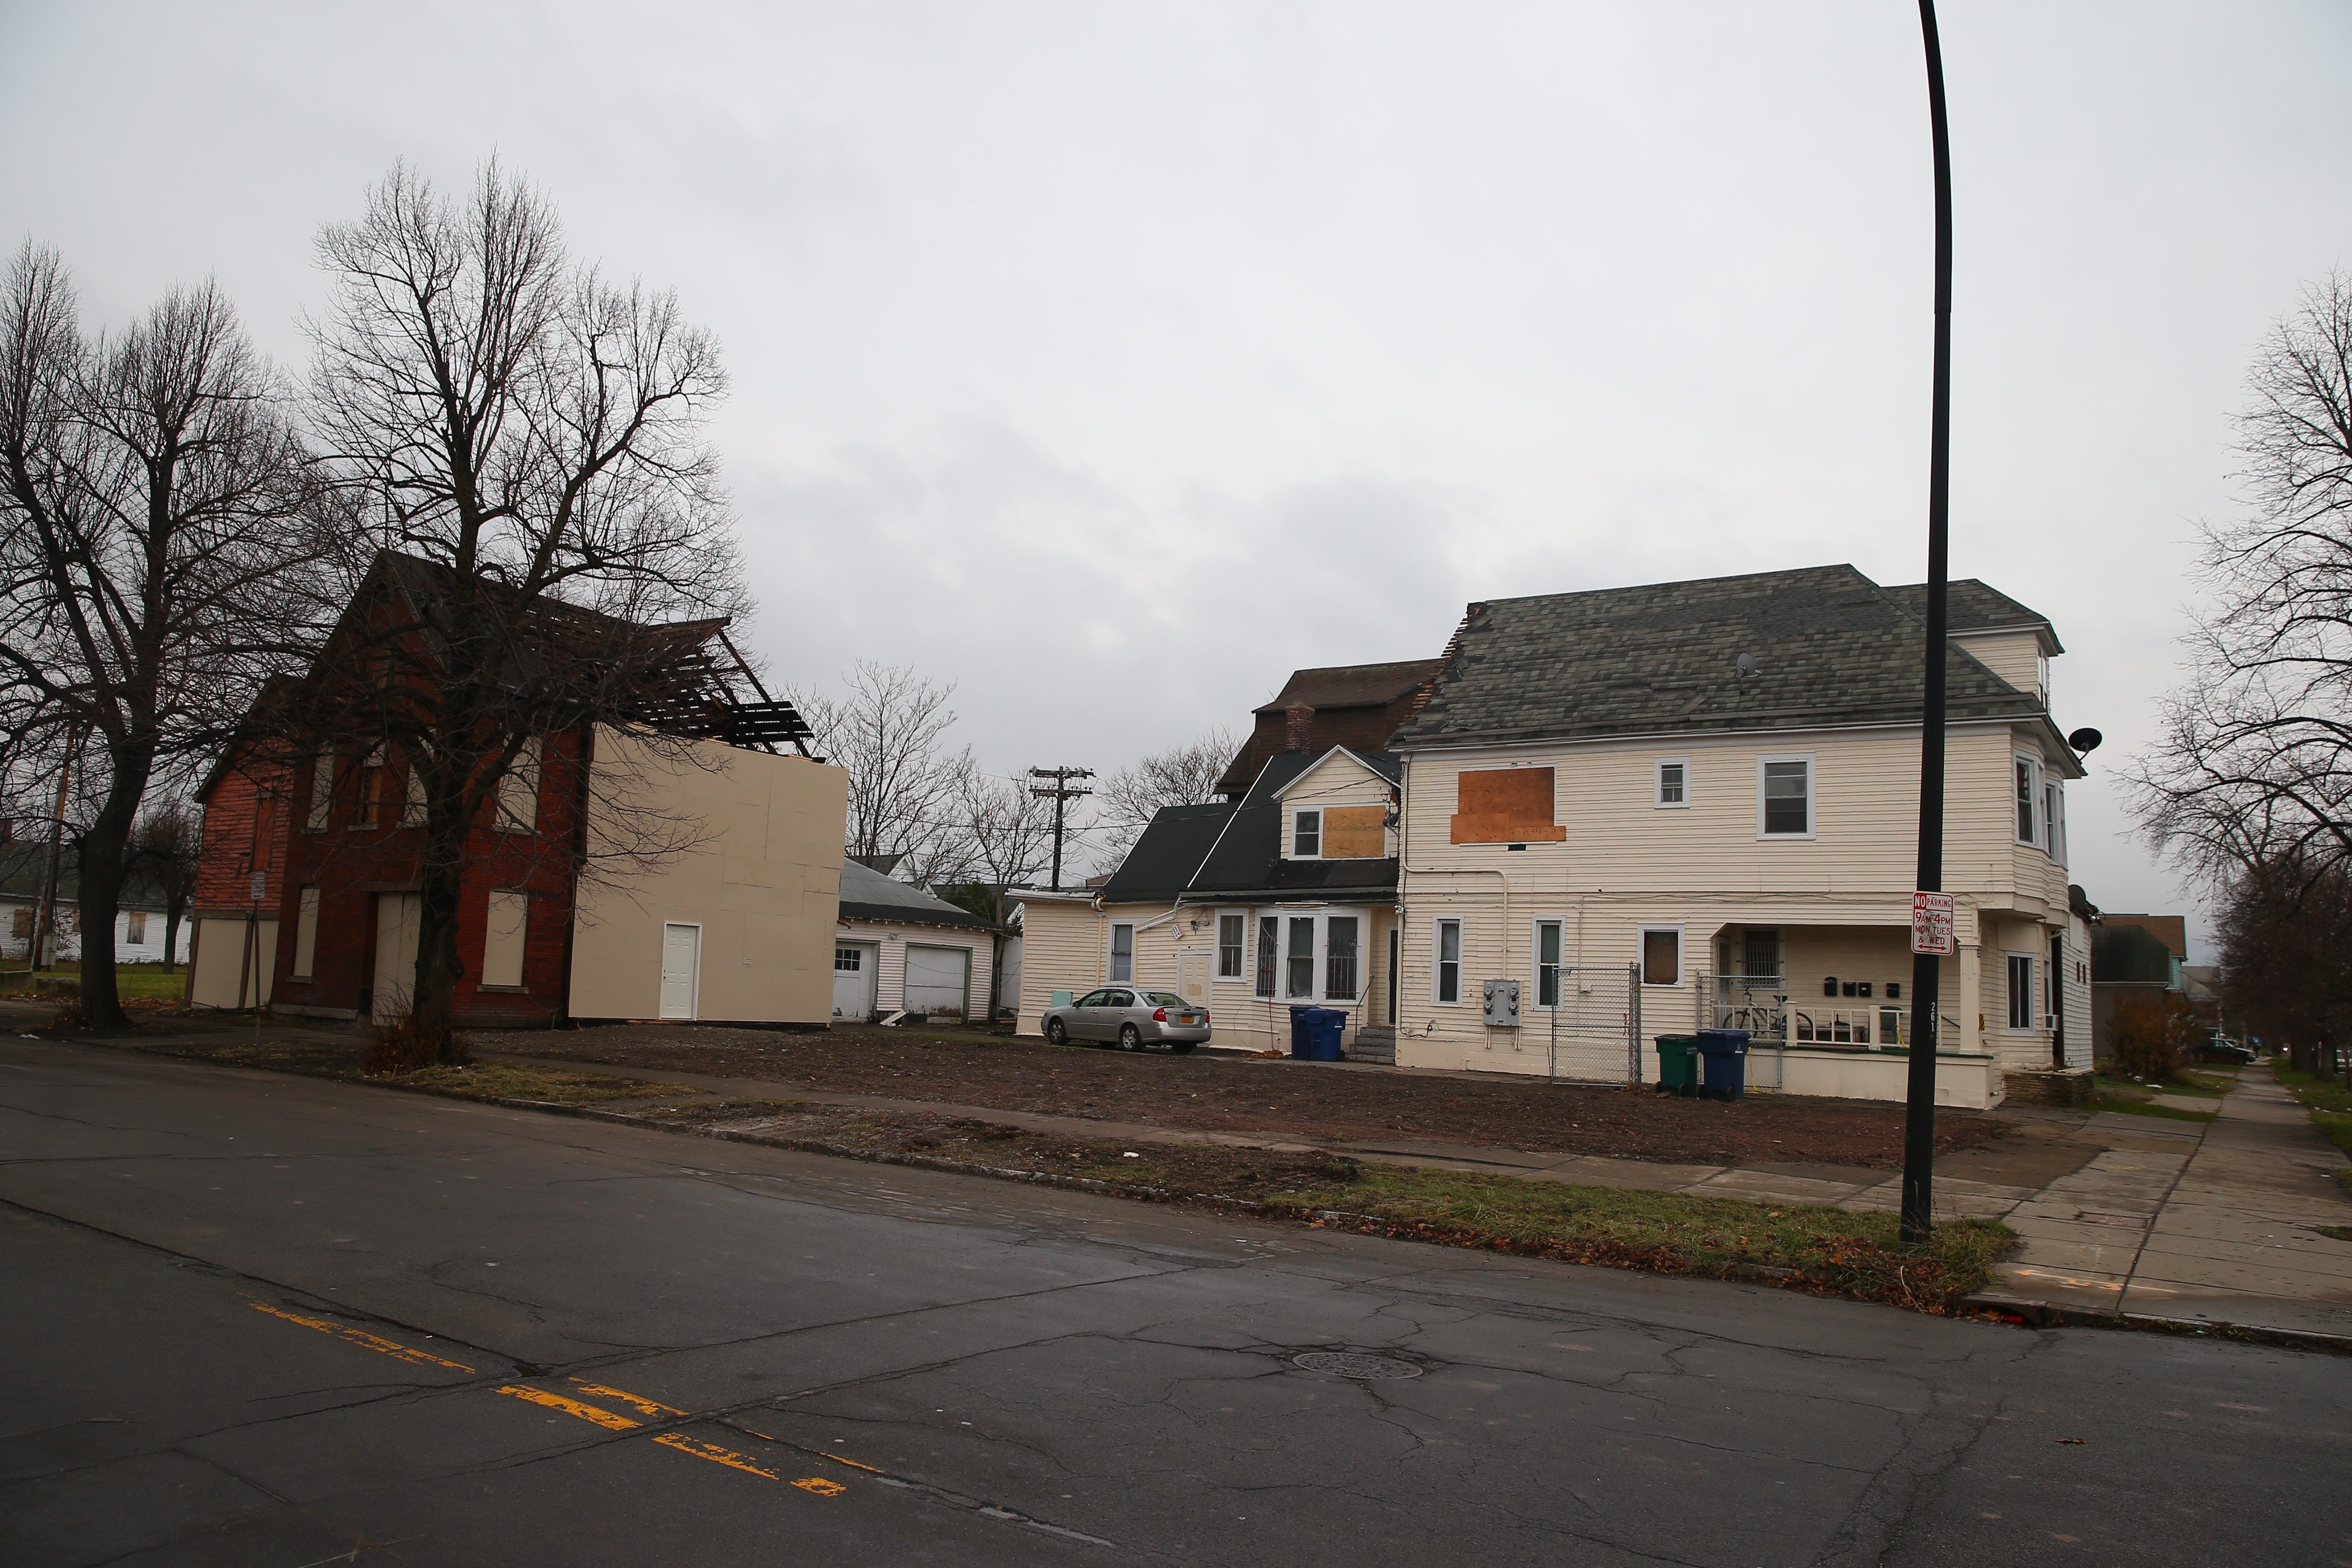 Only two small structures are left after a fire wrecked the former Jankowski Cigar Shop at 595 Fillmore Ave. A plan to redevelop the parcel is part of the long-range vision to revive the Fillmore Avenue commercial district.